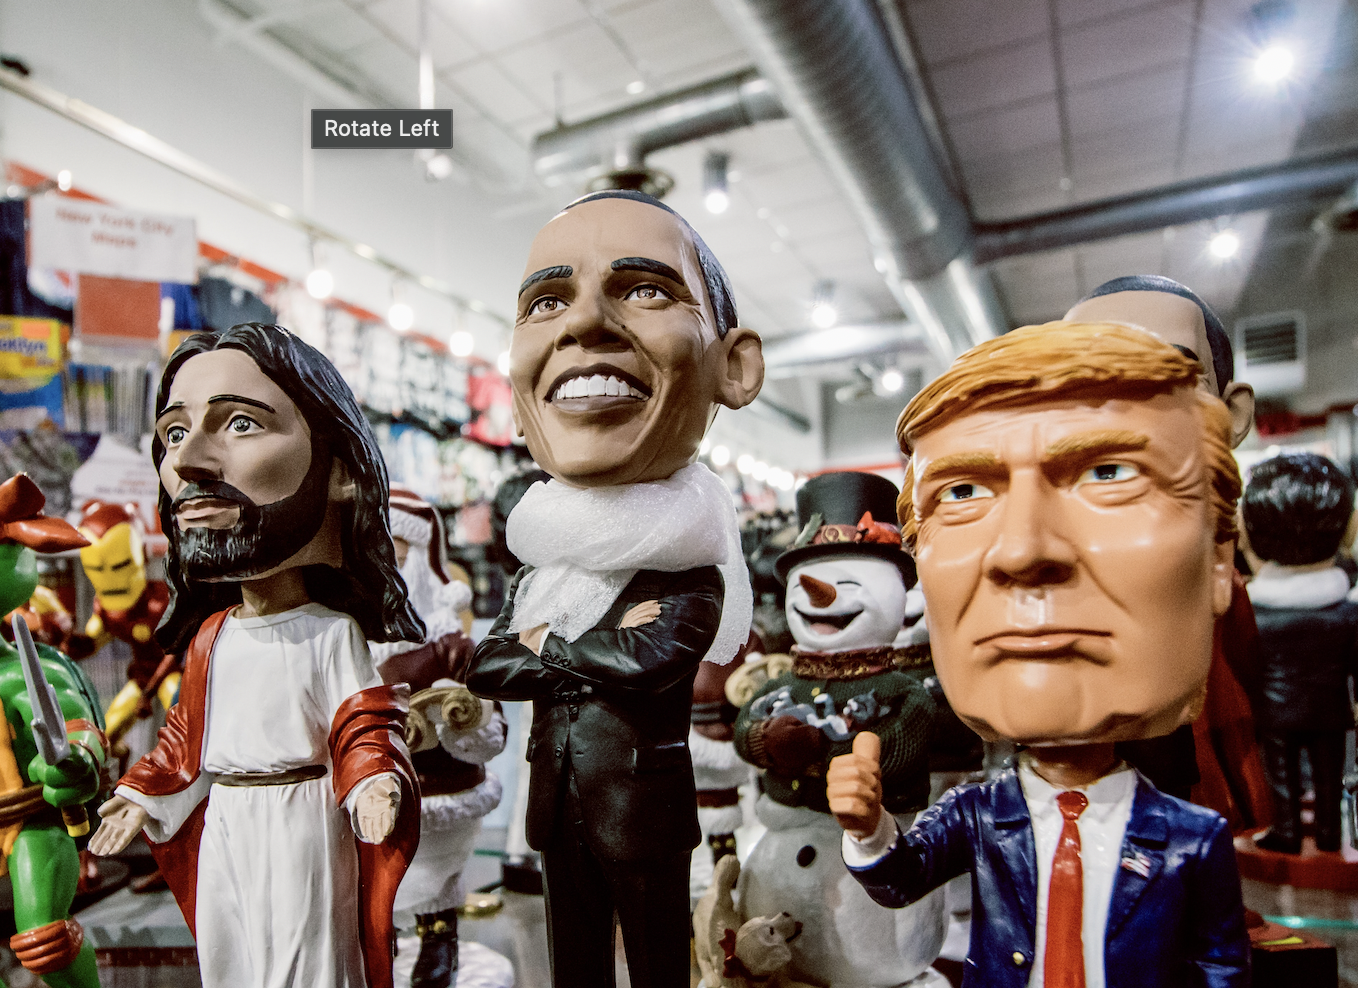 Photo of bobbleheads depicting Jesus Christ, Barack Obama and Donald Trump on display in a novelty gift shop. Image courtesy of Stephen Mayes via Unsplash.